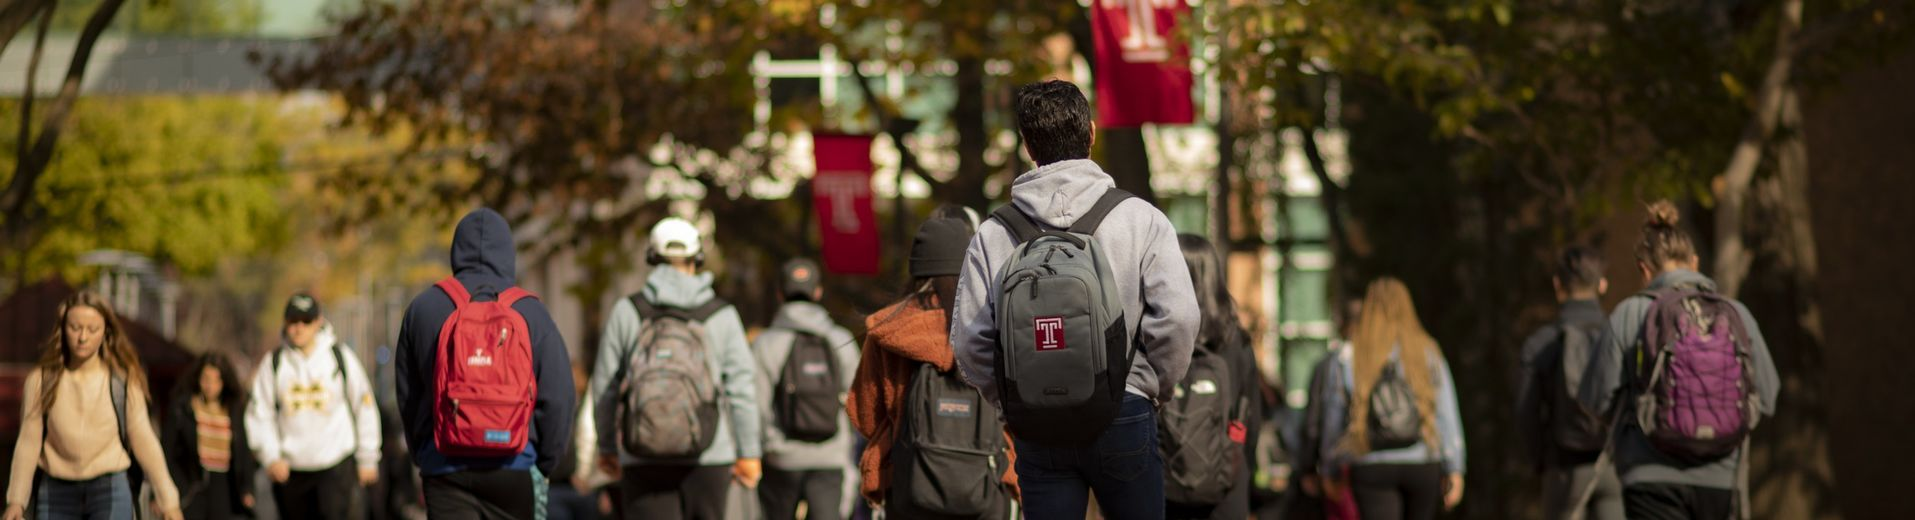 Students walking on Liacouras Walk on campus